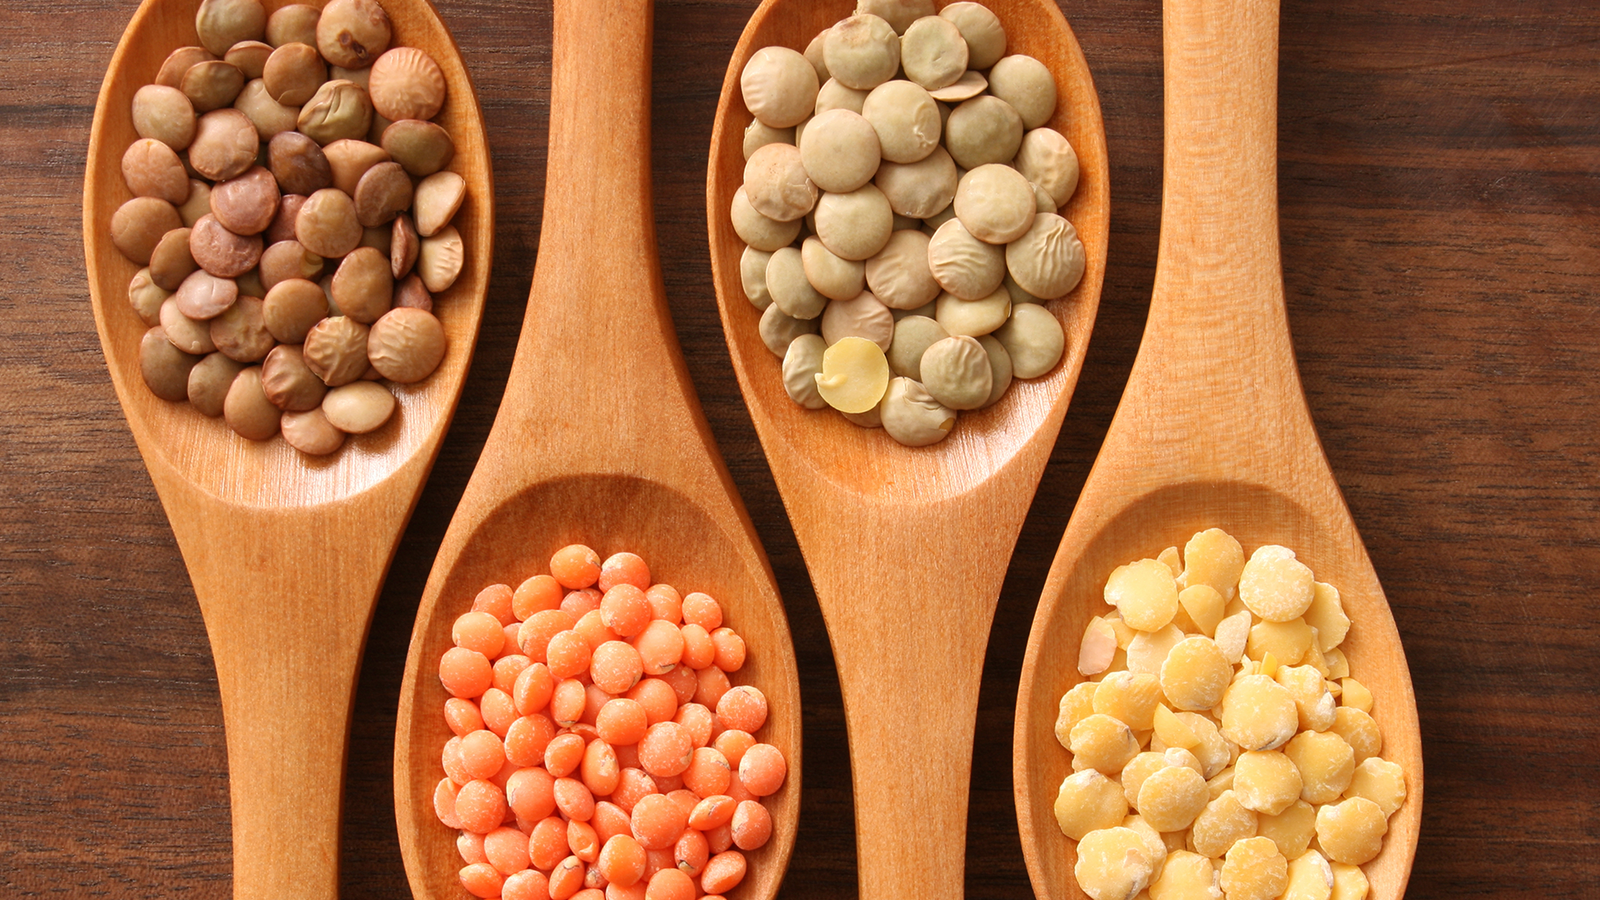 Top 3 Health Benefits of Lentils